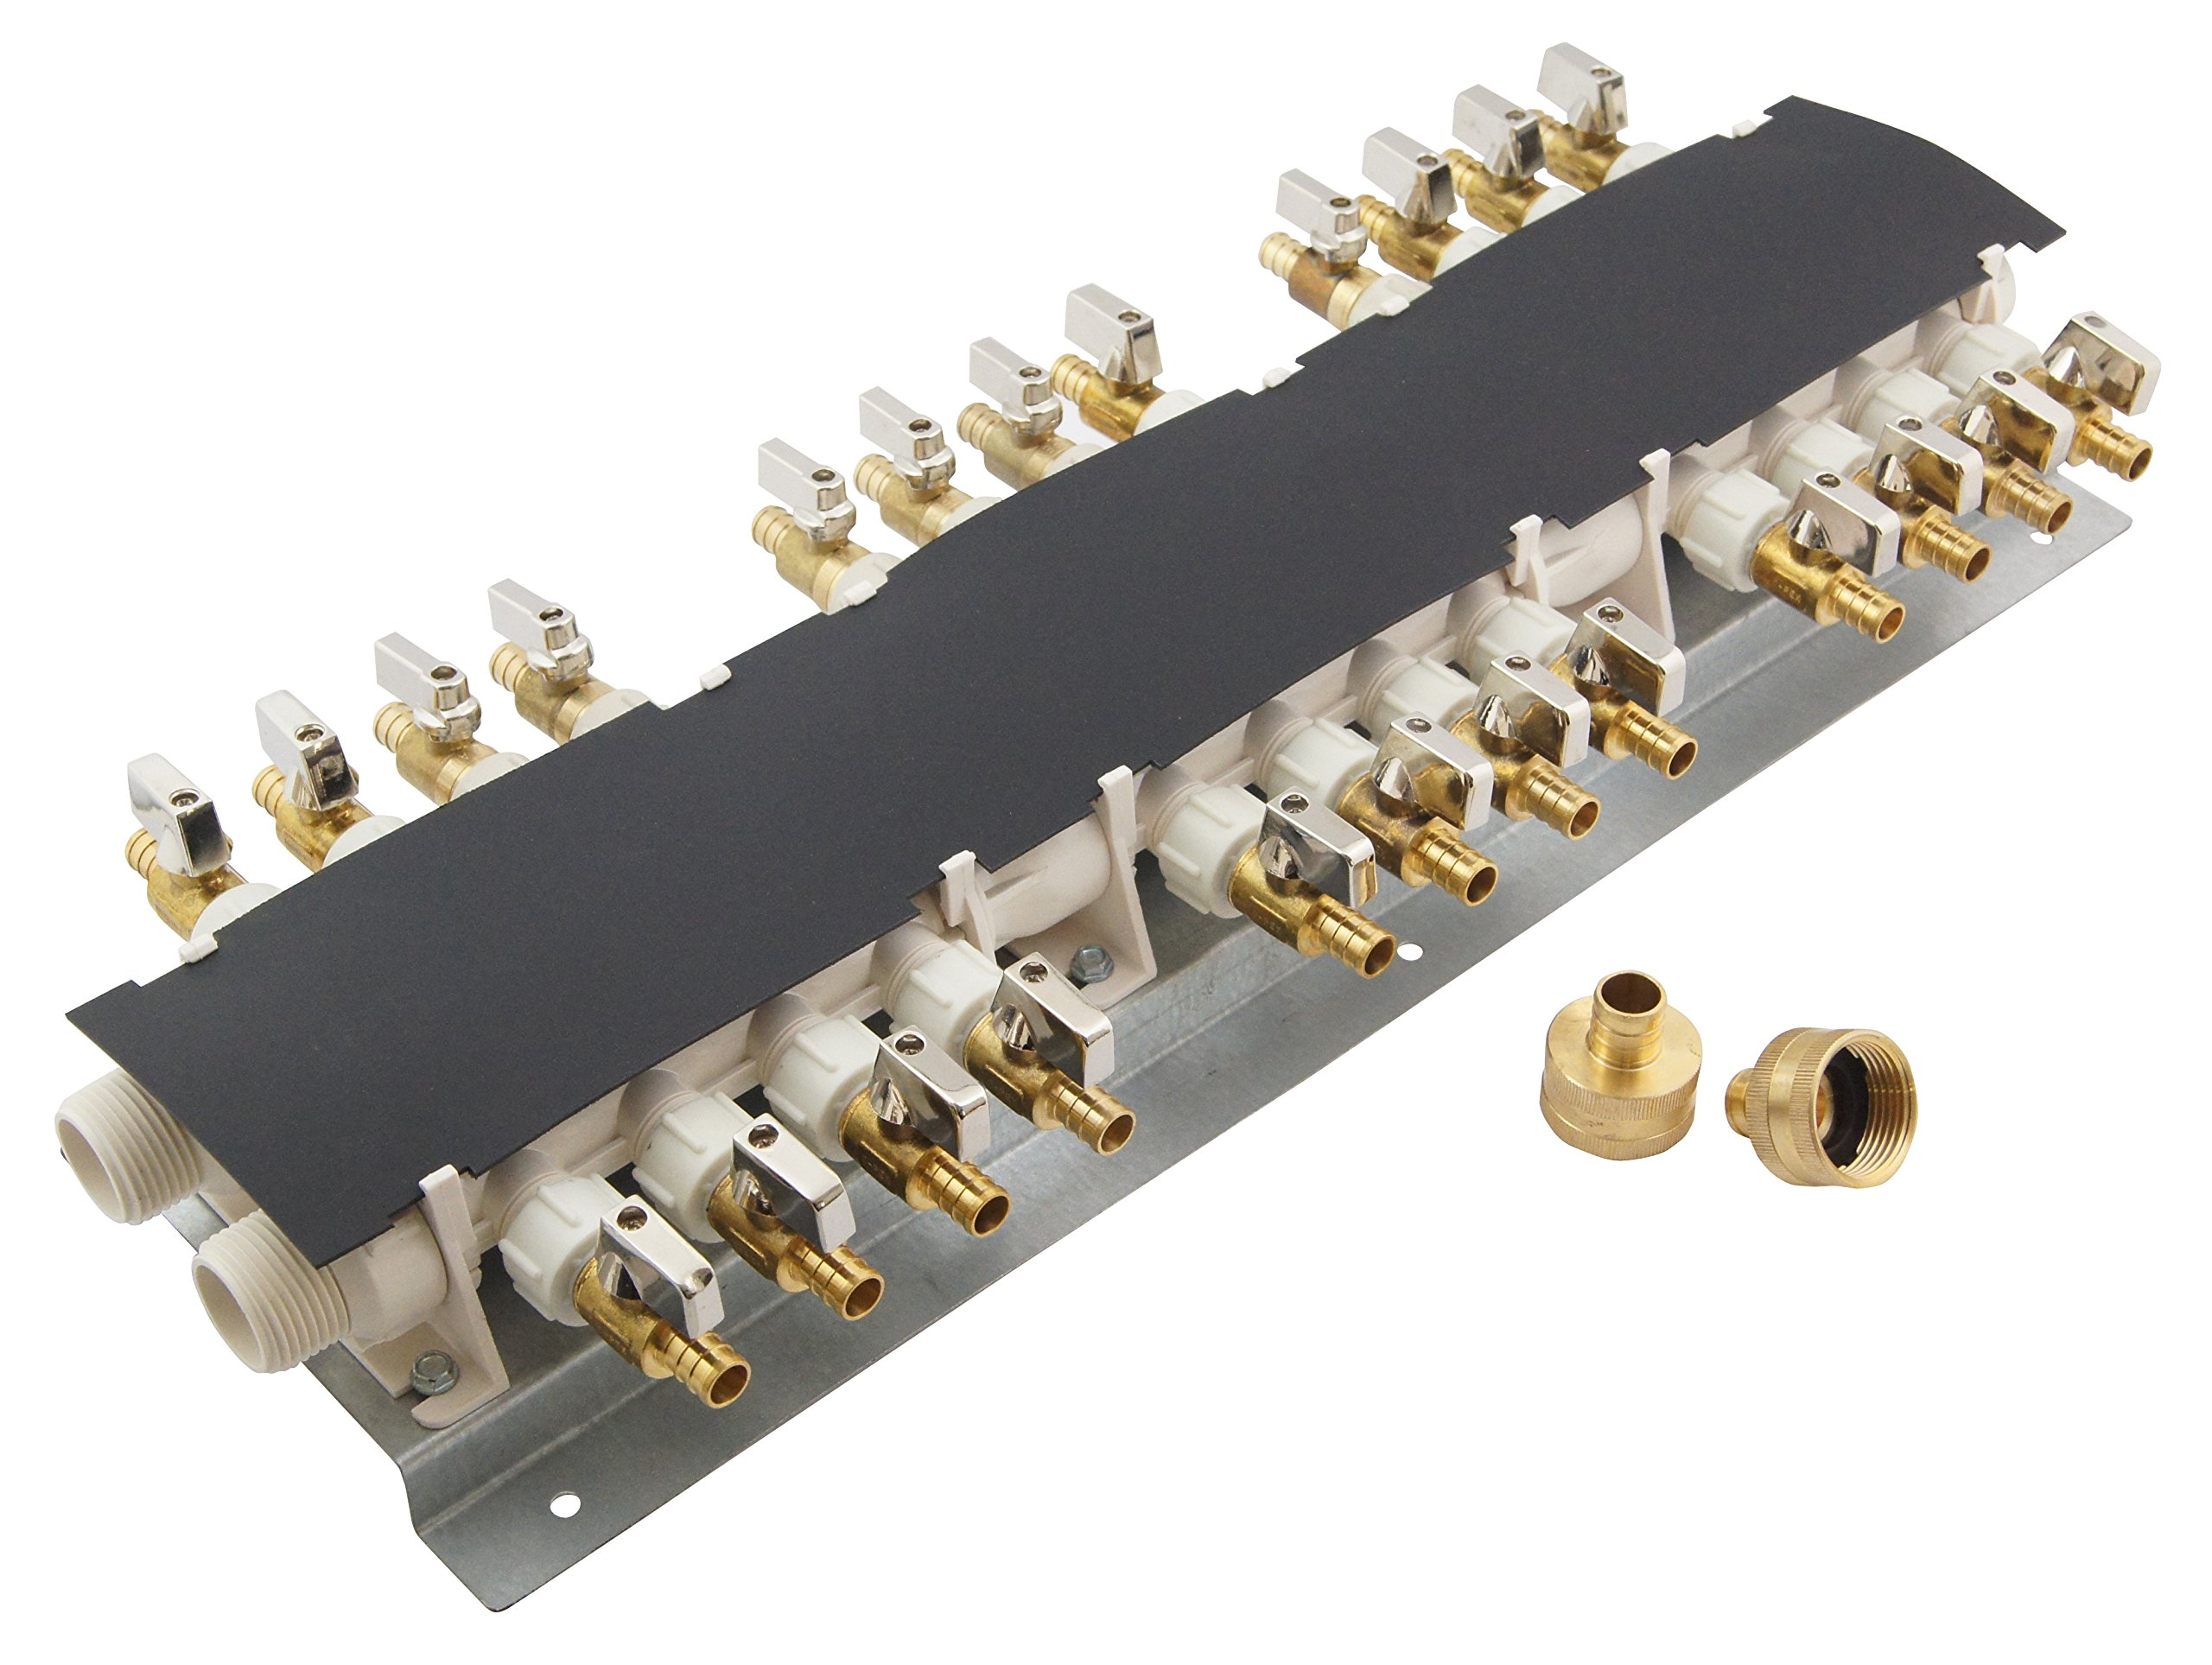 Apollo PEX 6907924CP 24 Port PEX Manifold (3/4-inch Inlets, 1/2-inch Outlets) with Shutoff Valves by Apollo Valves